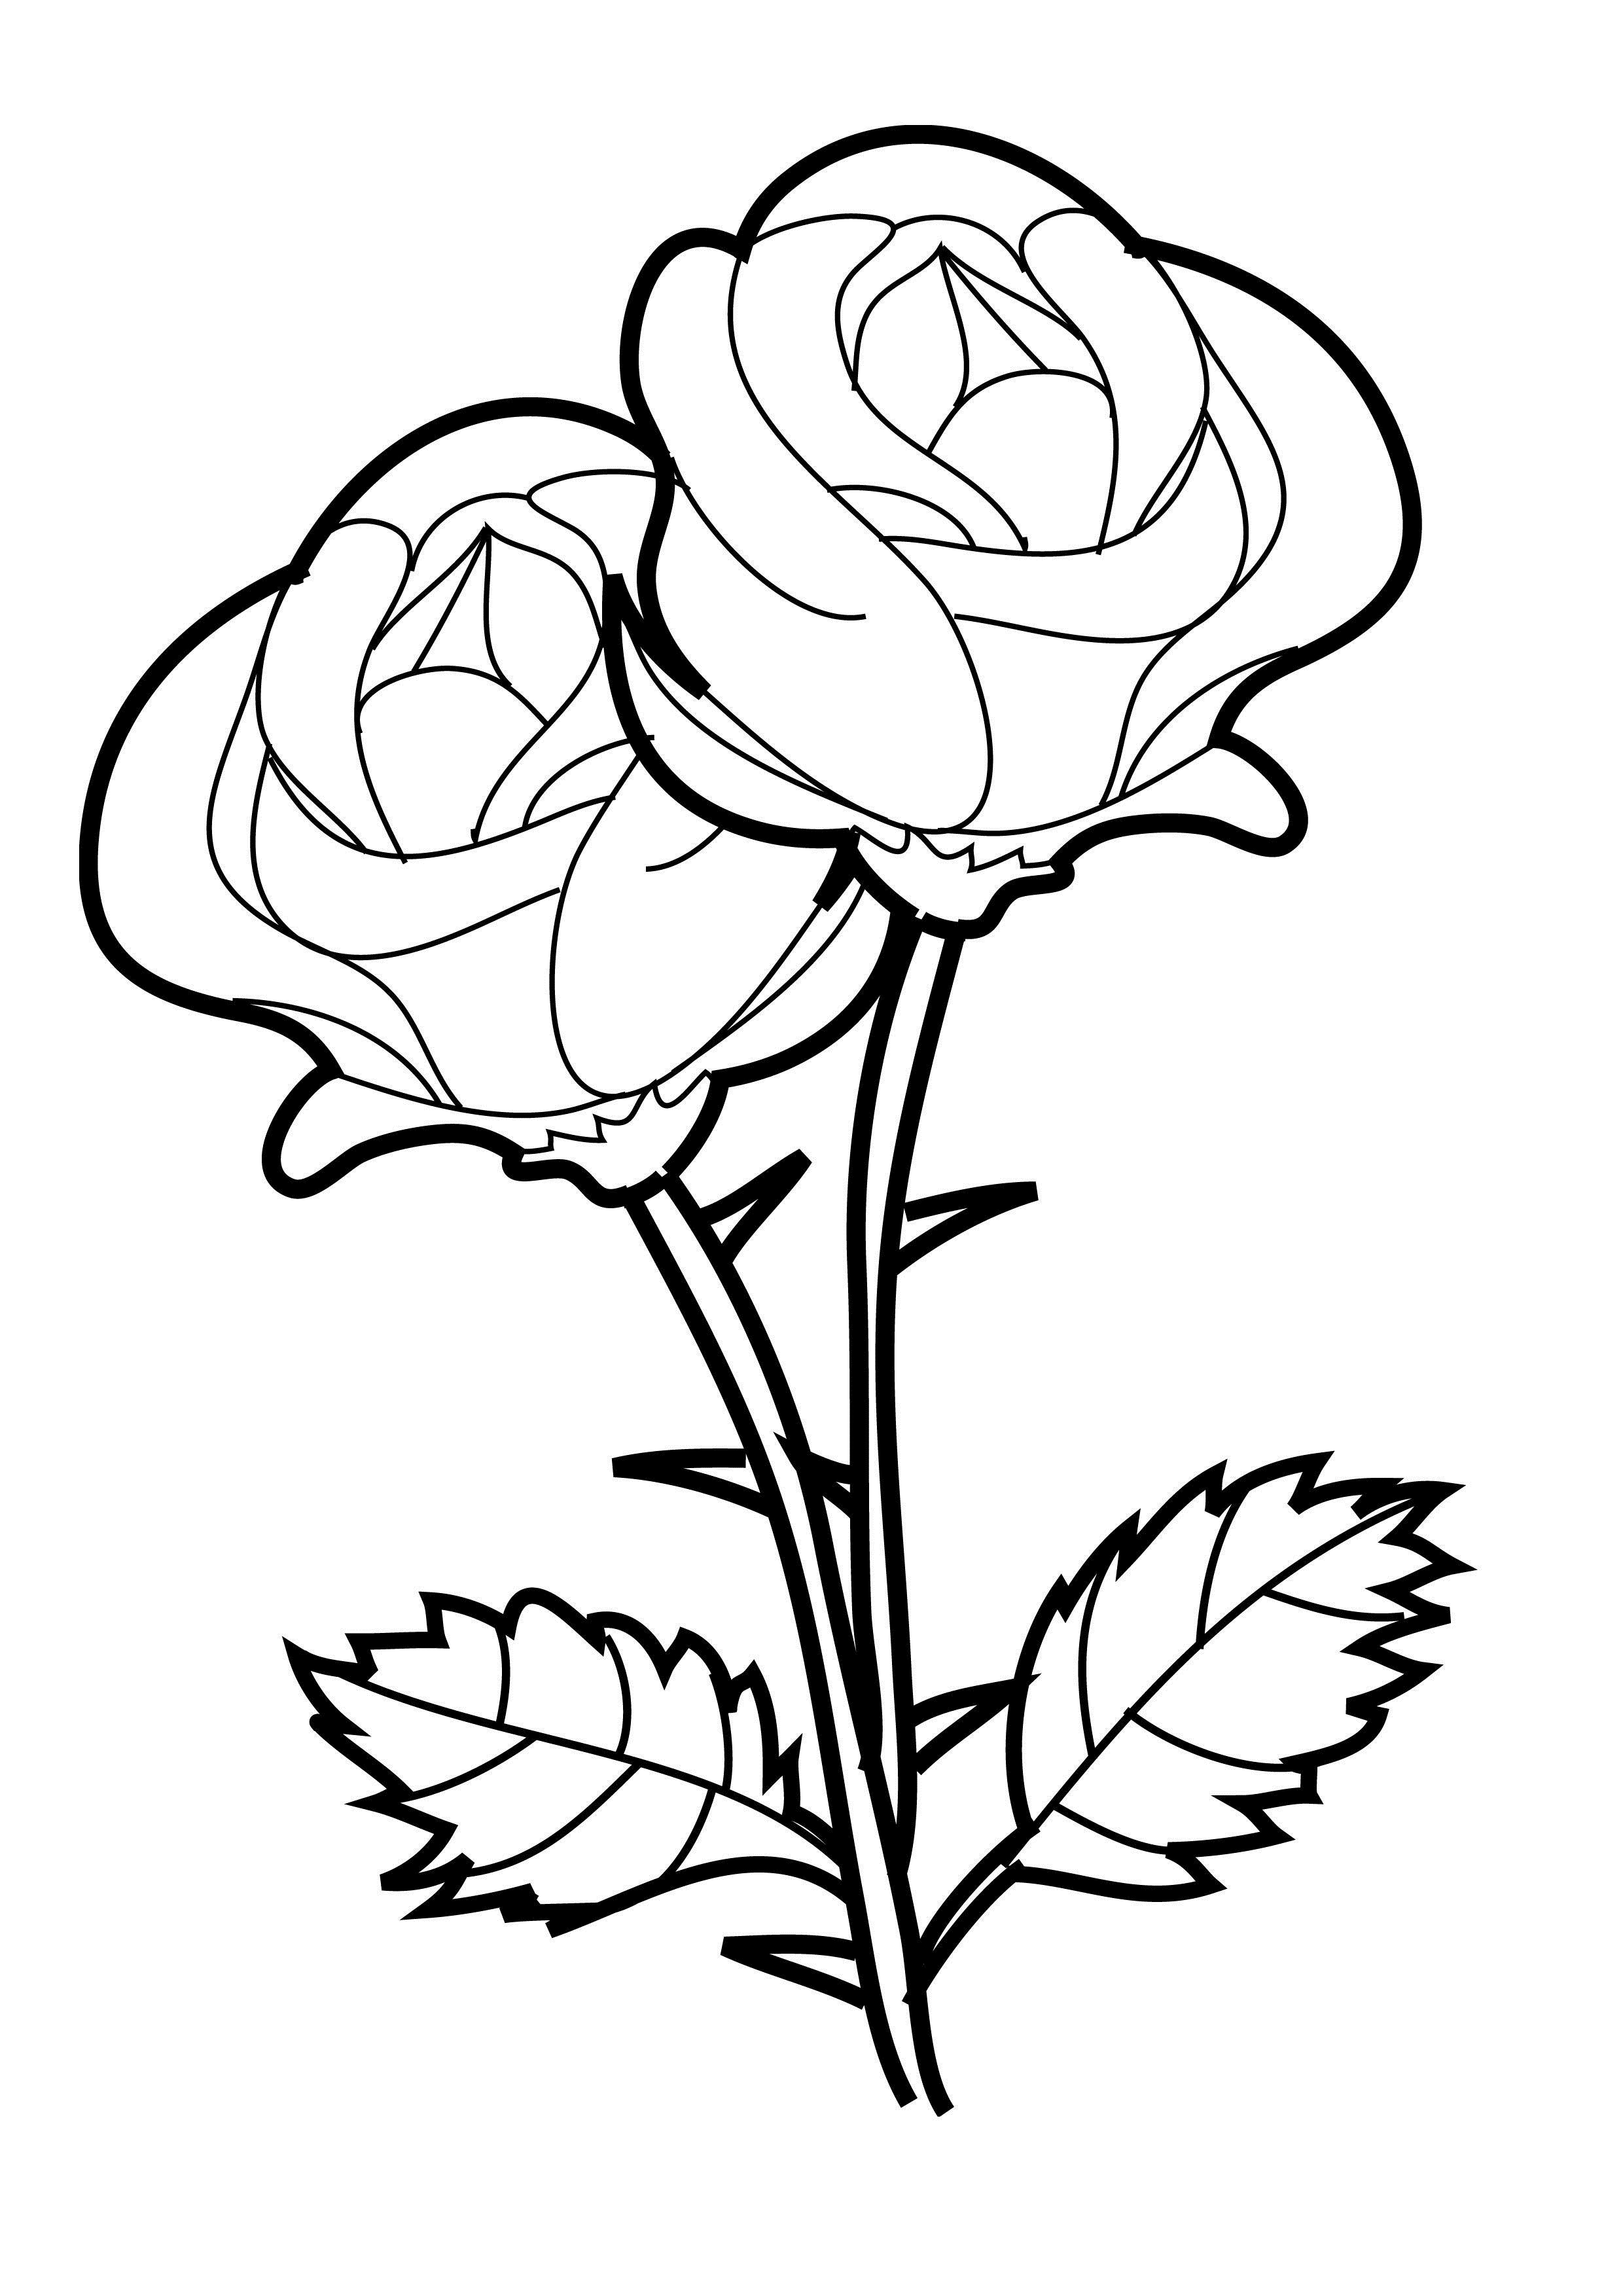 Rose Coloring Pages for Girls - Coloring Pages